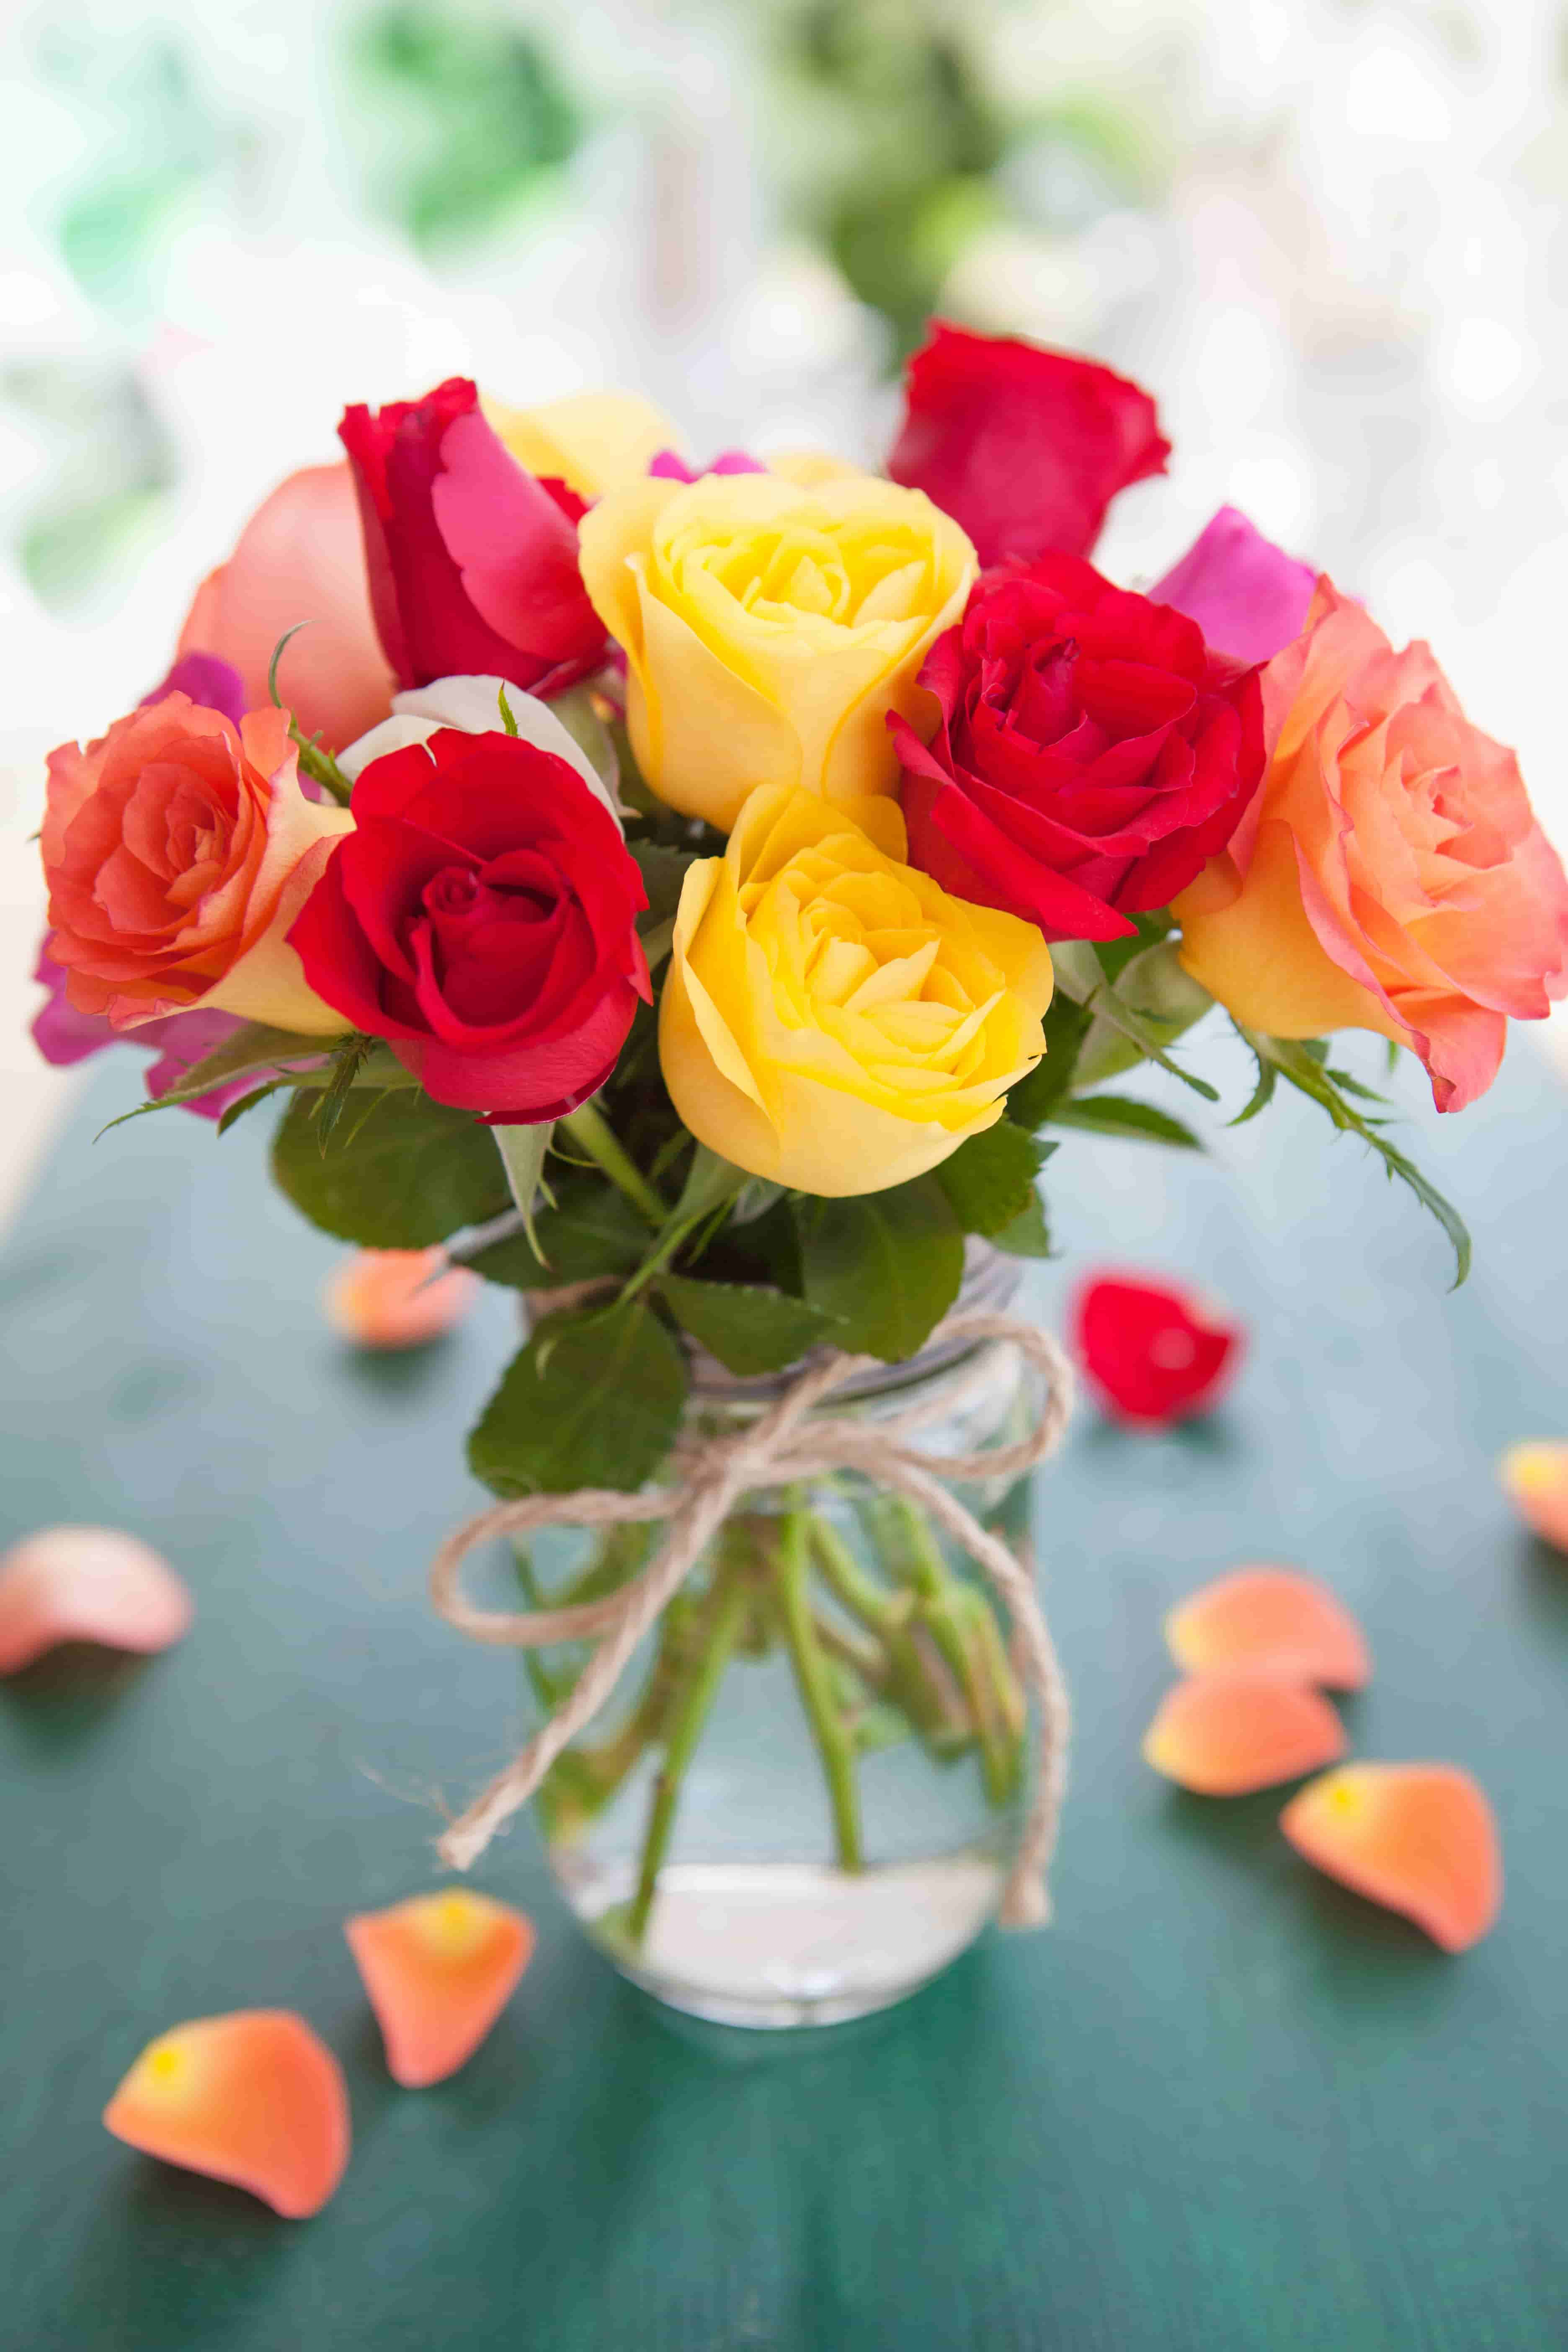 colorful roses images